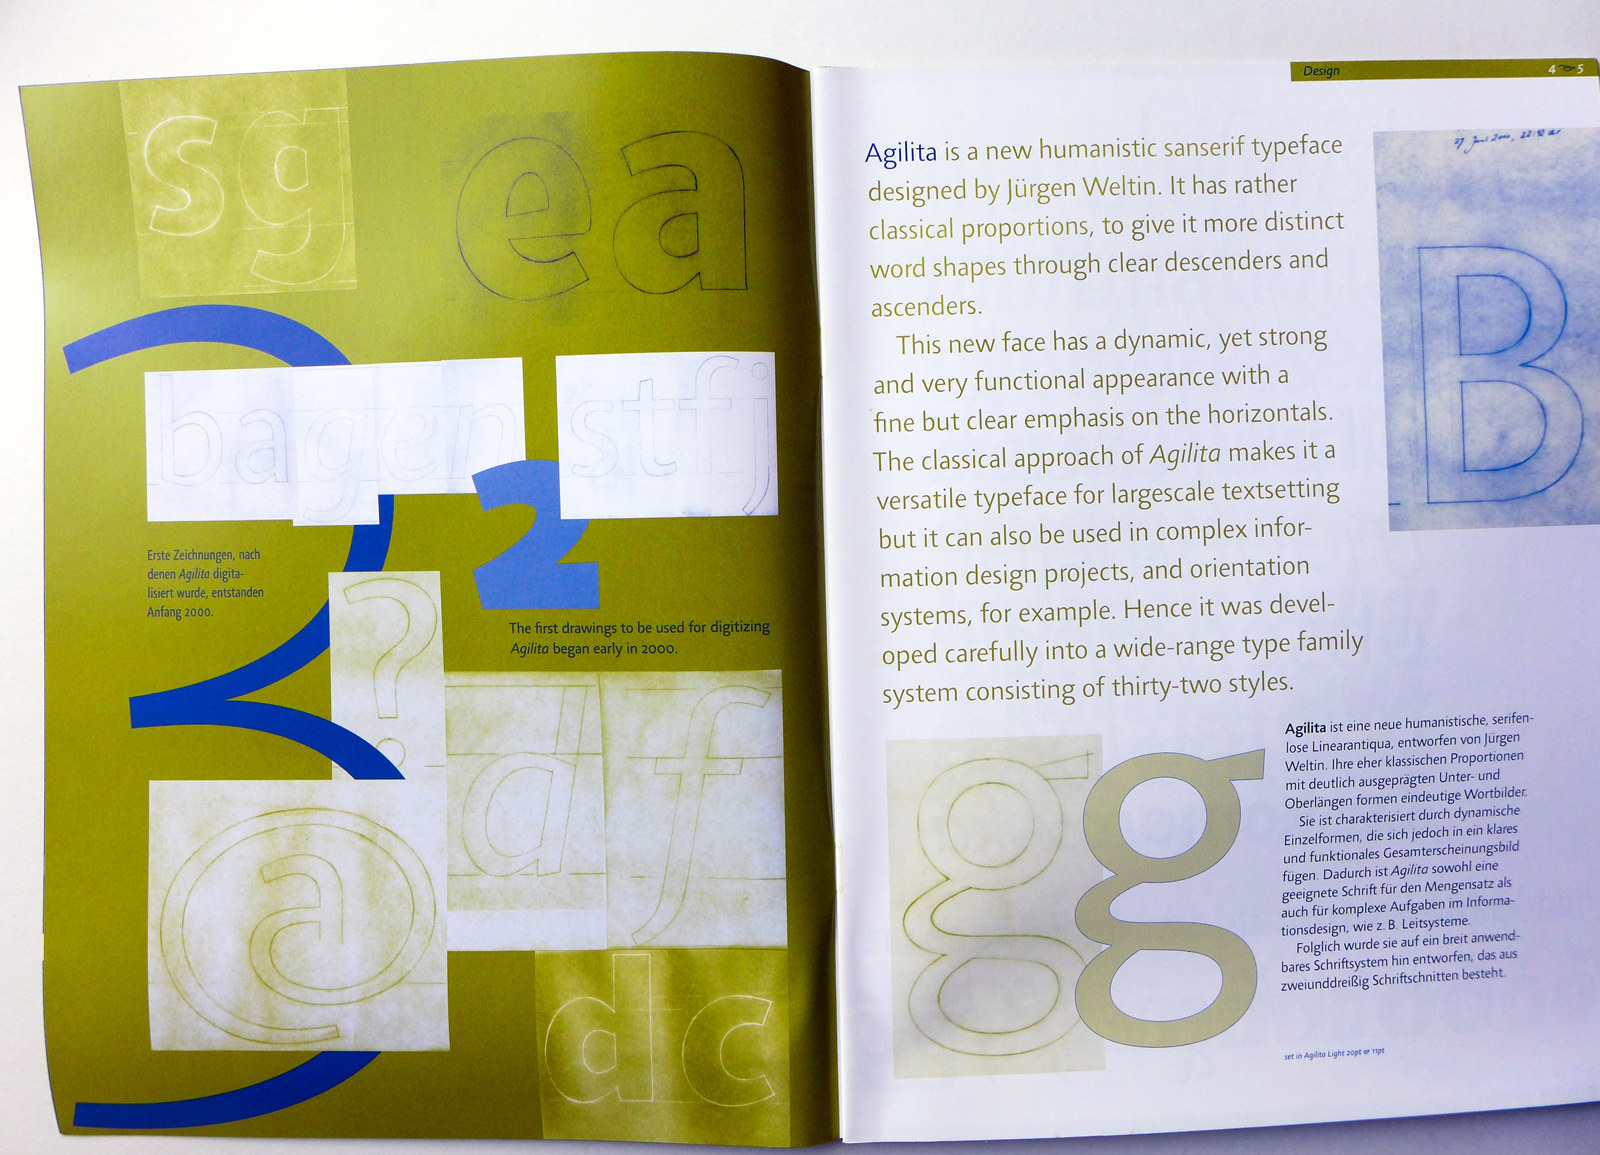 Design and drawings of the Agilita typeface